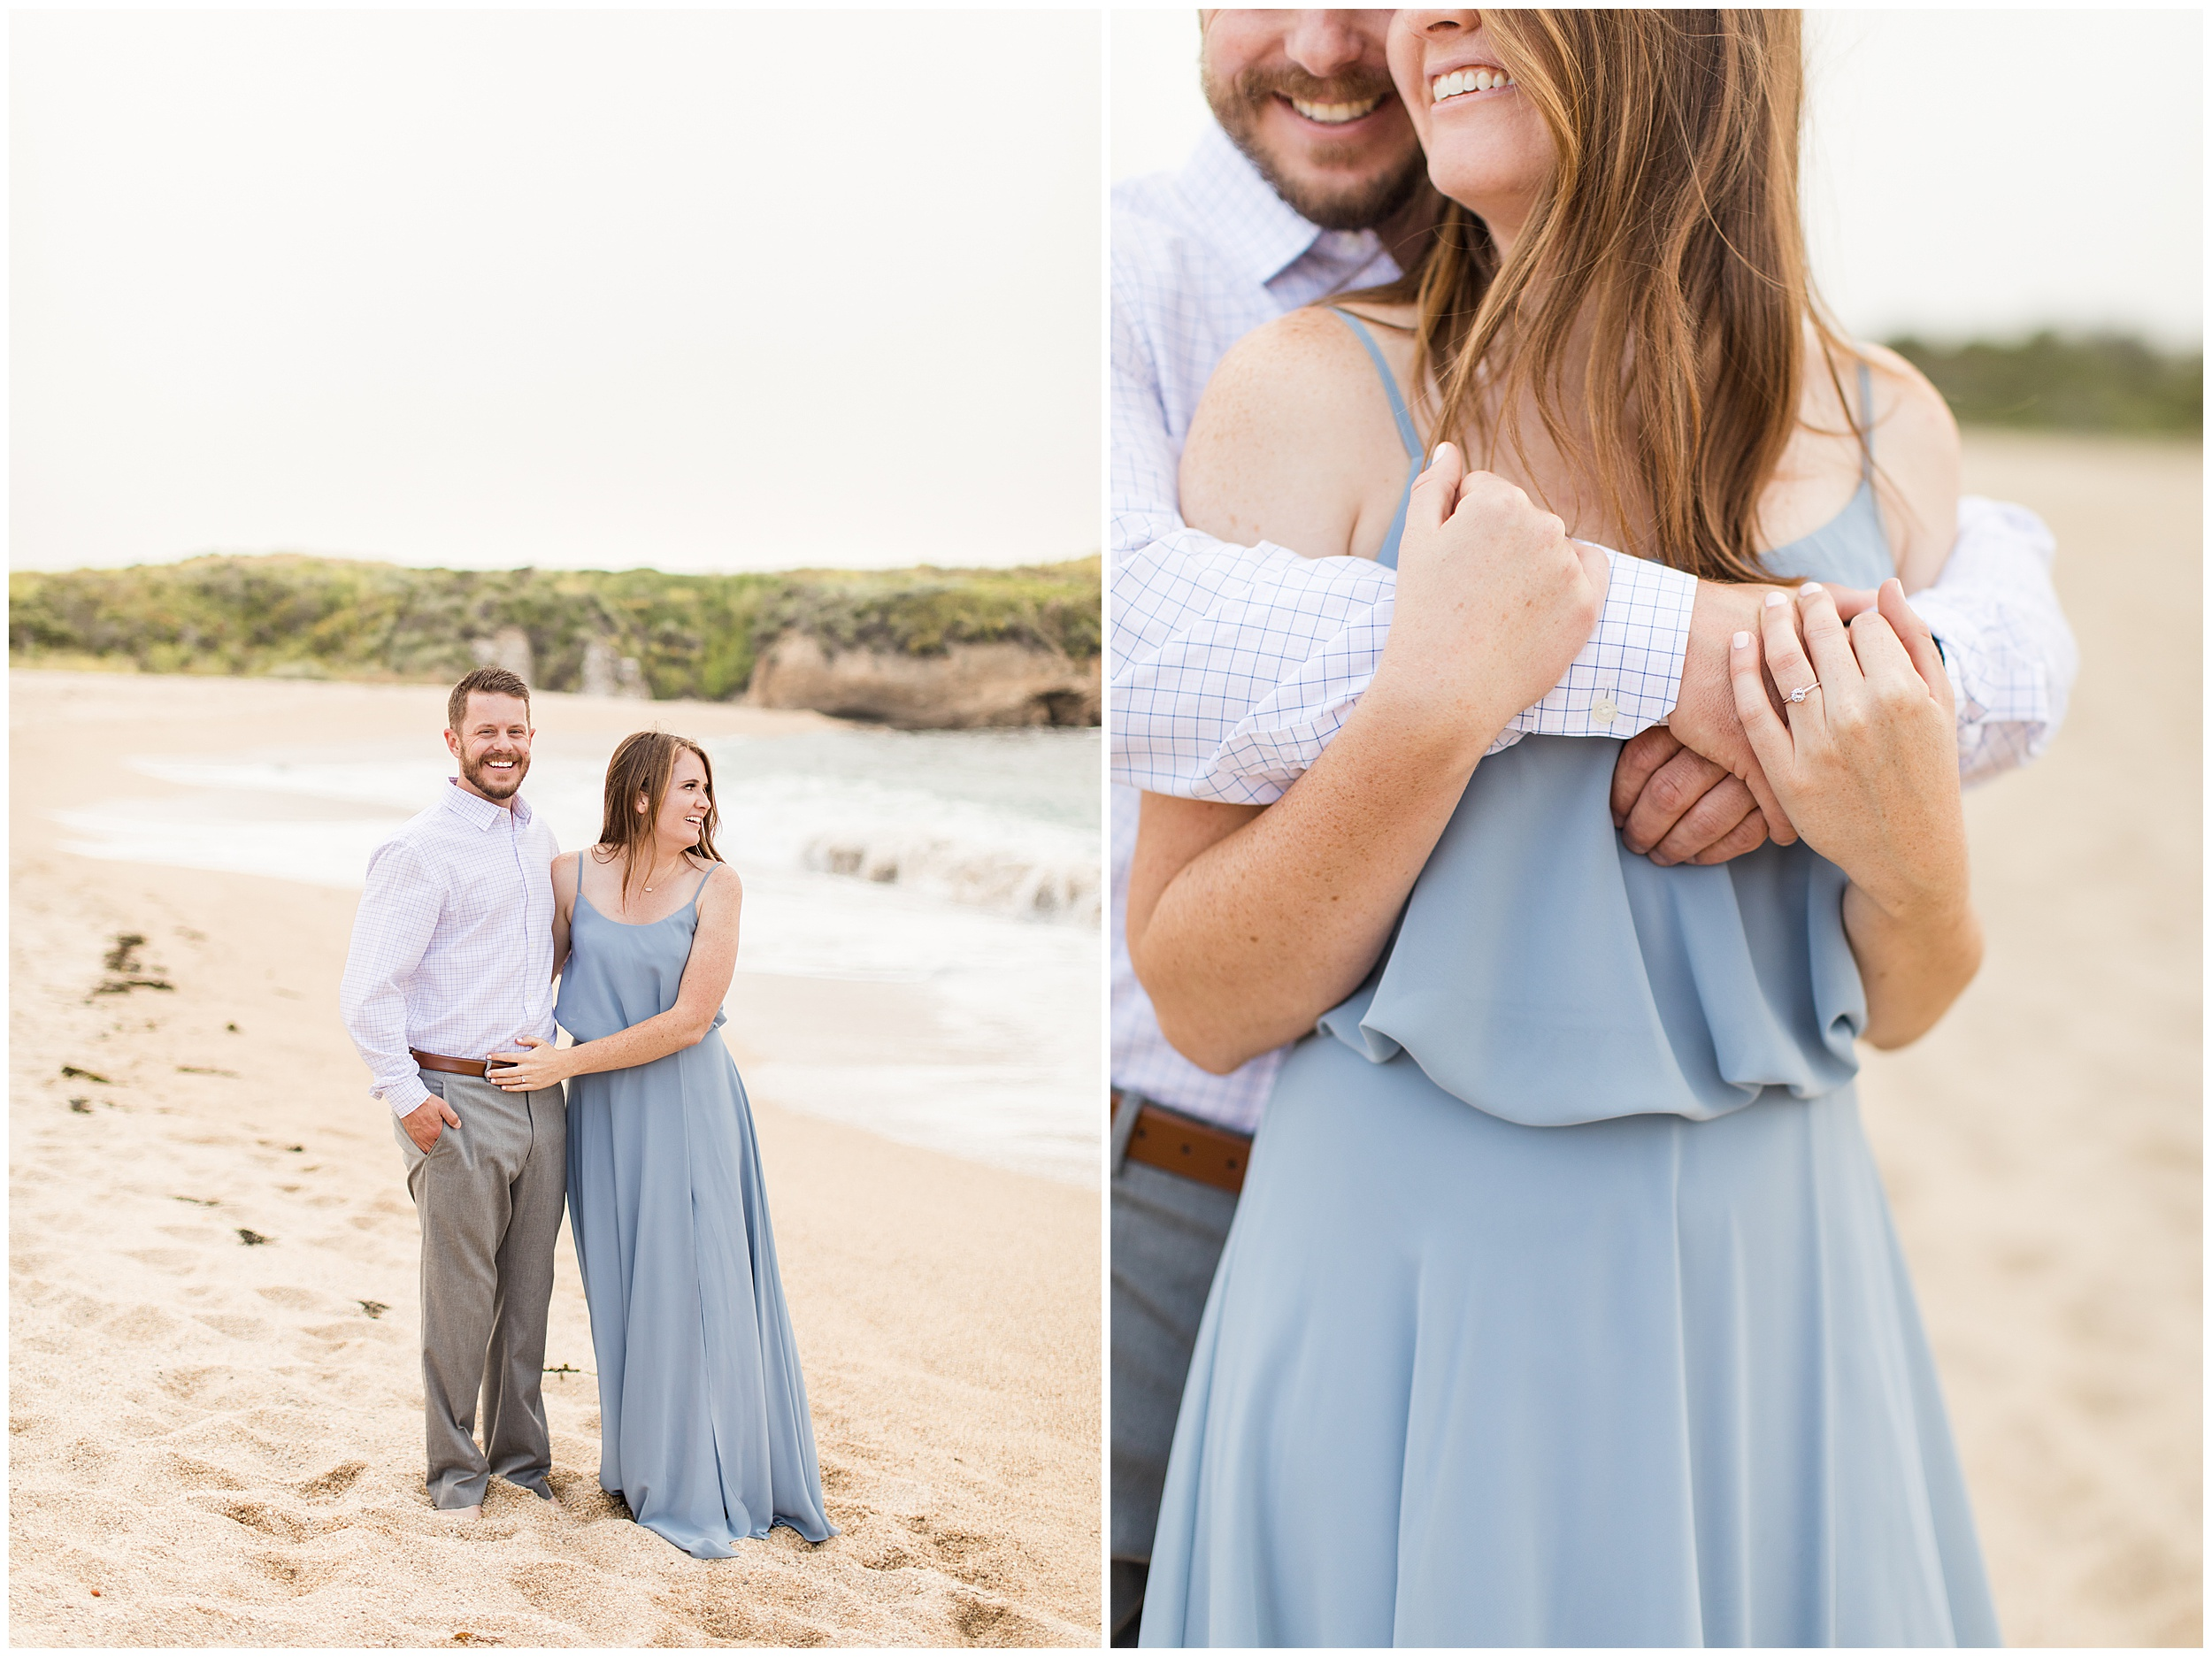 2019 carmel by the sea surprise proposal engagement session wedding photographer angela sue photography_0023.jpg